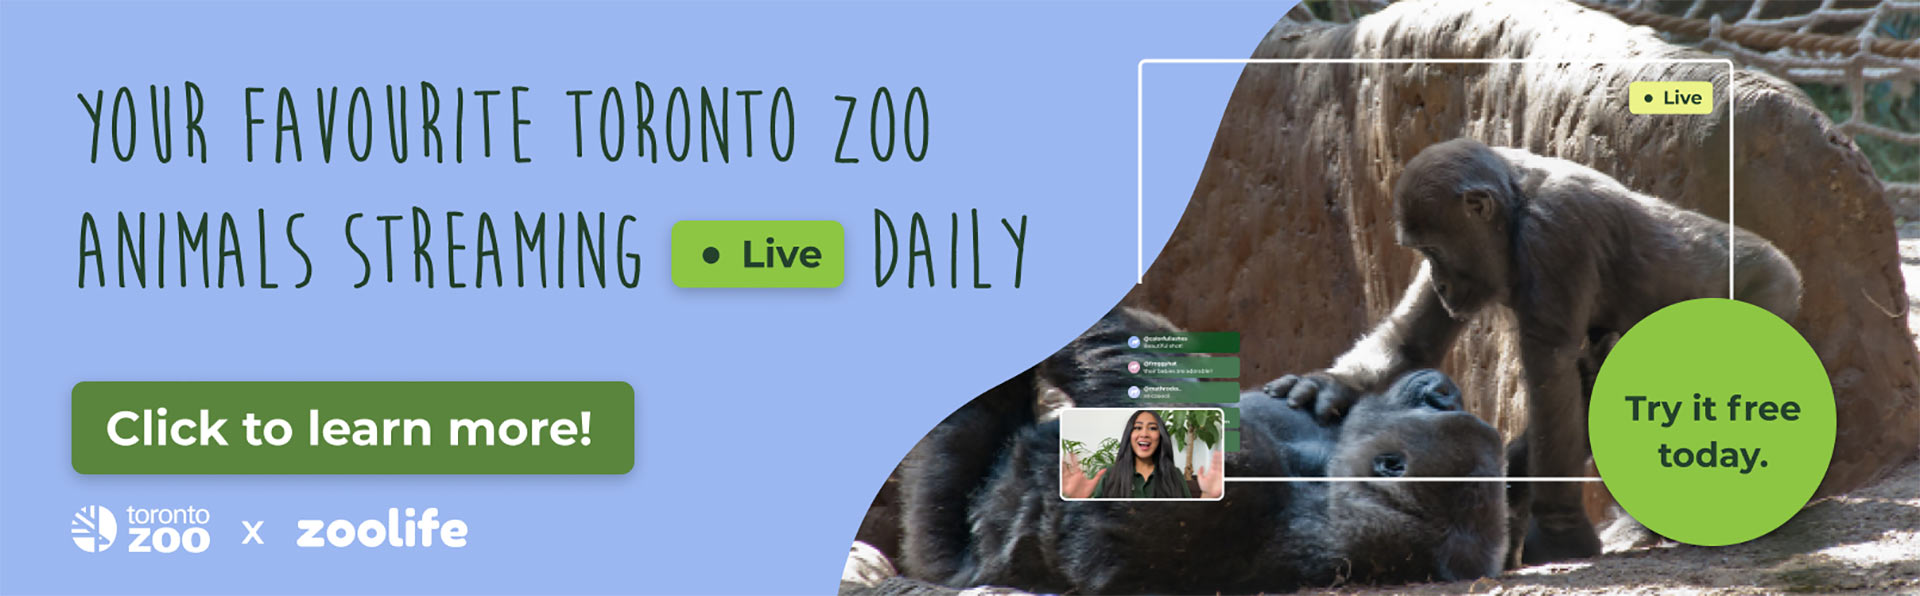 Your favourite Toronto Zoo animals streaming live daily